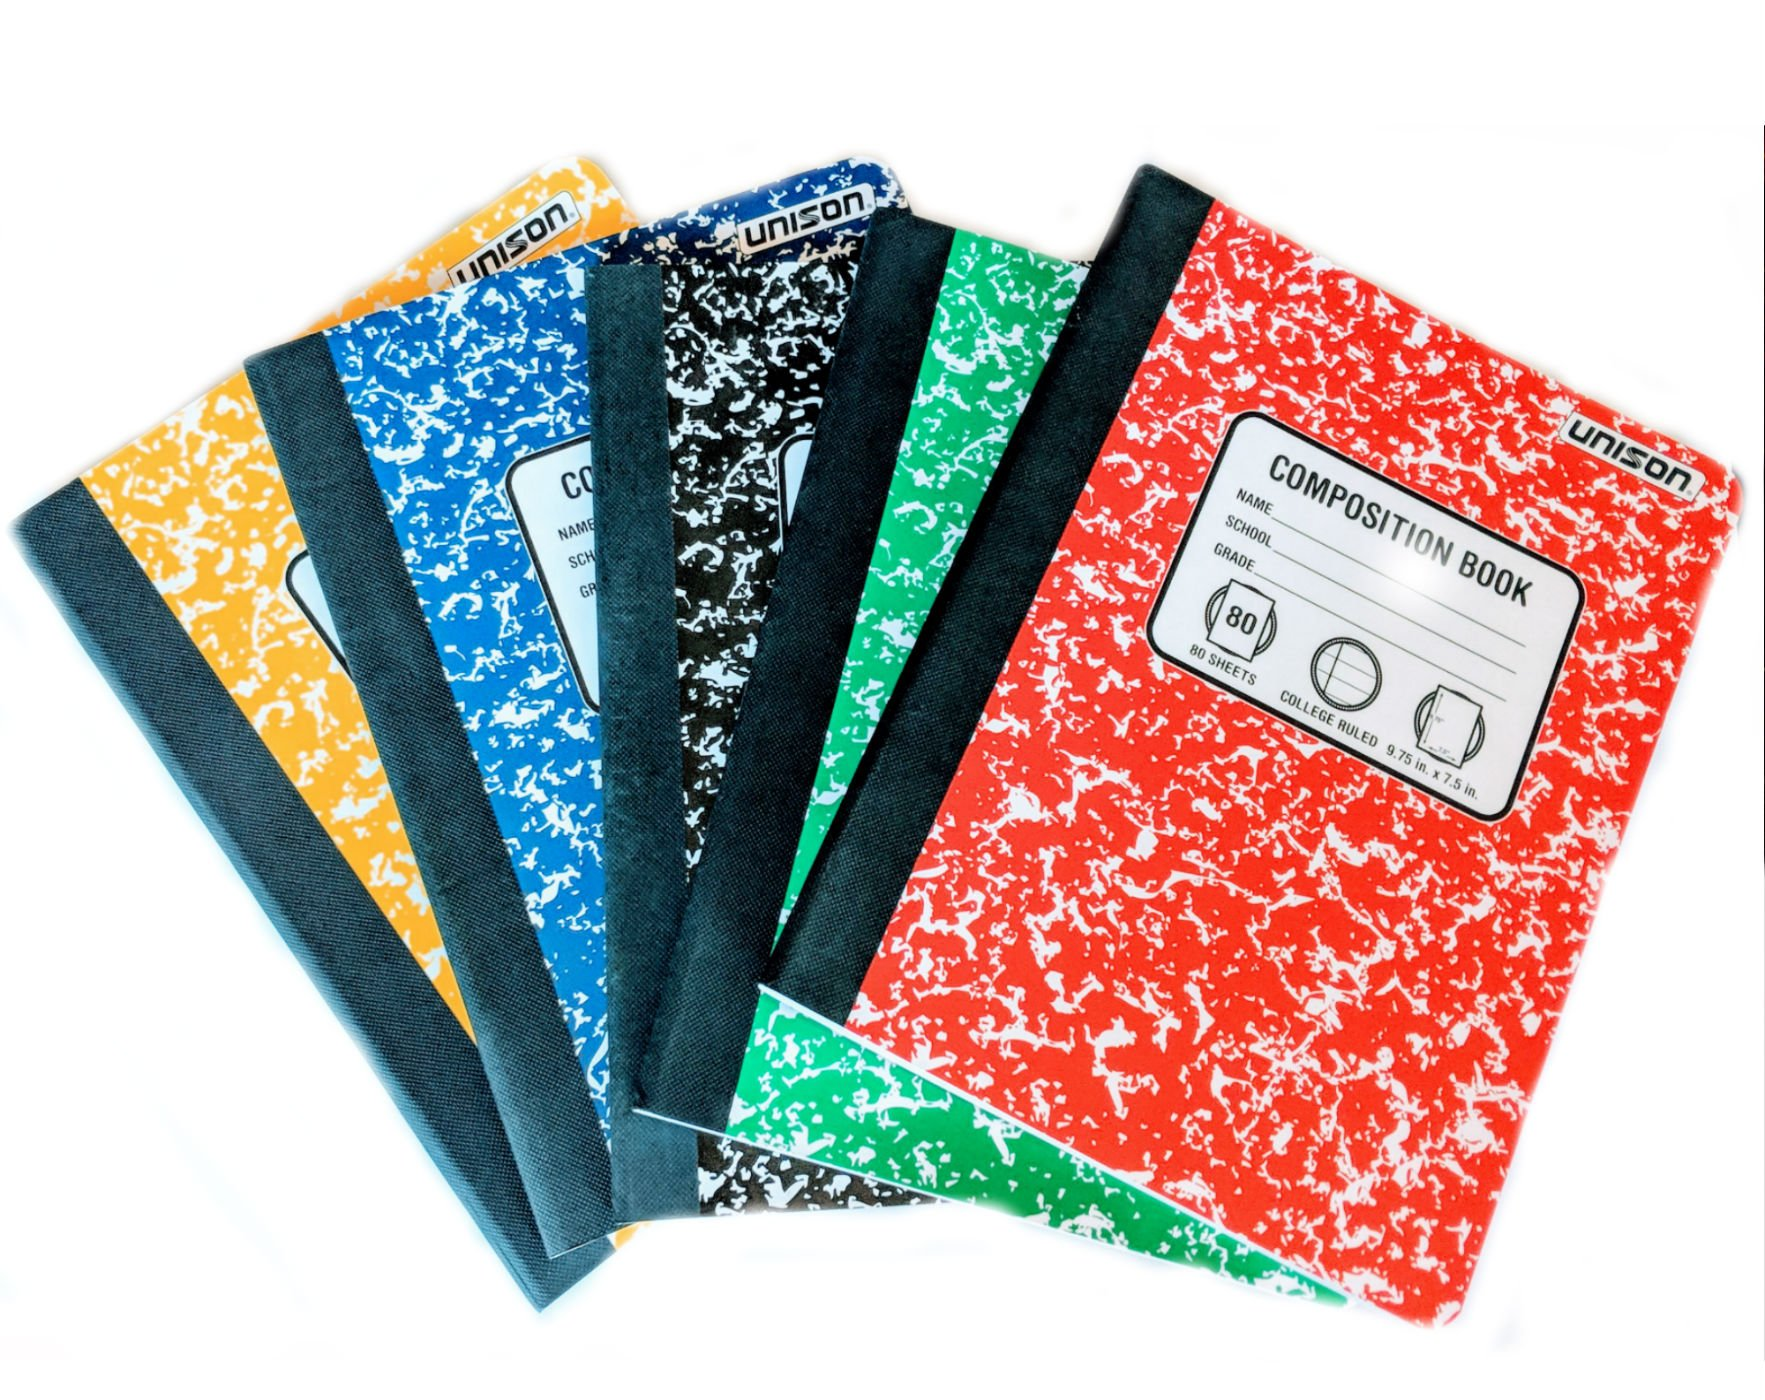 Bundle of 5 Marbled College Ruled Composition Notebooks: One Black, Red, Yellow , Blue , Green